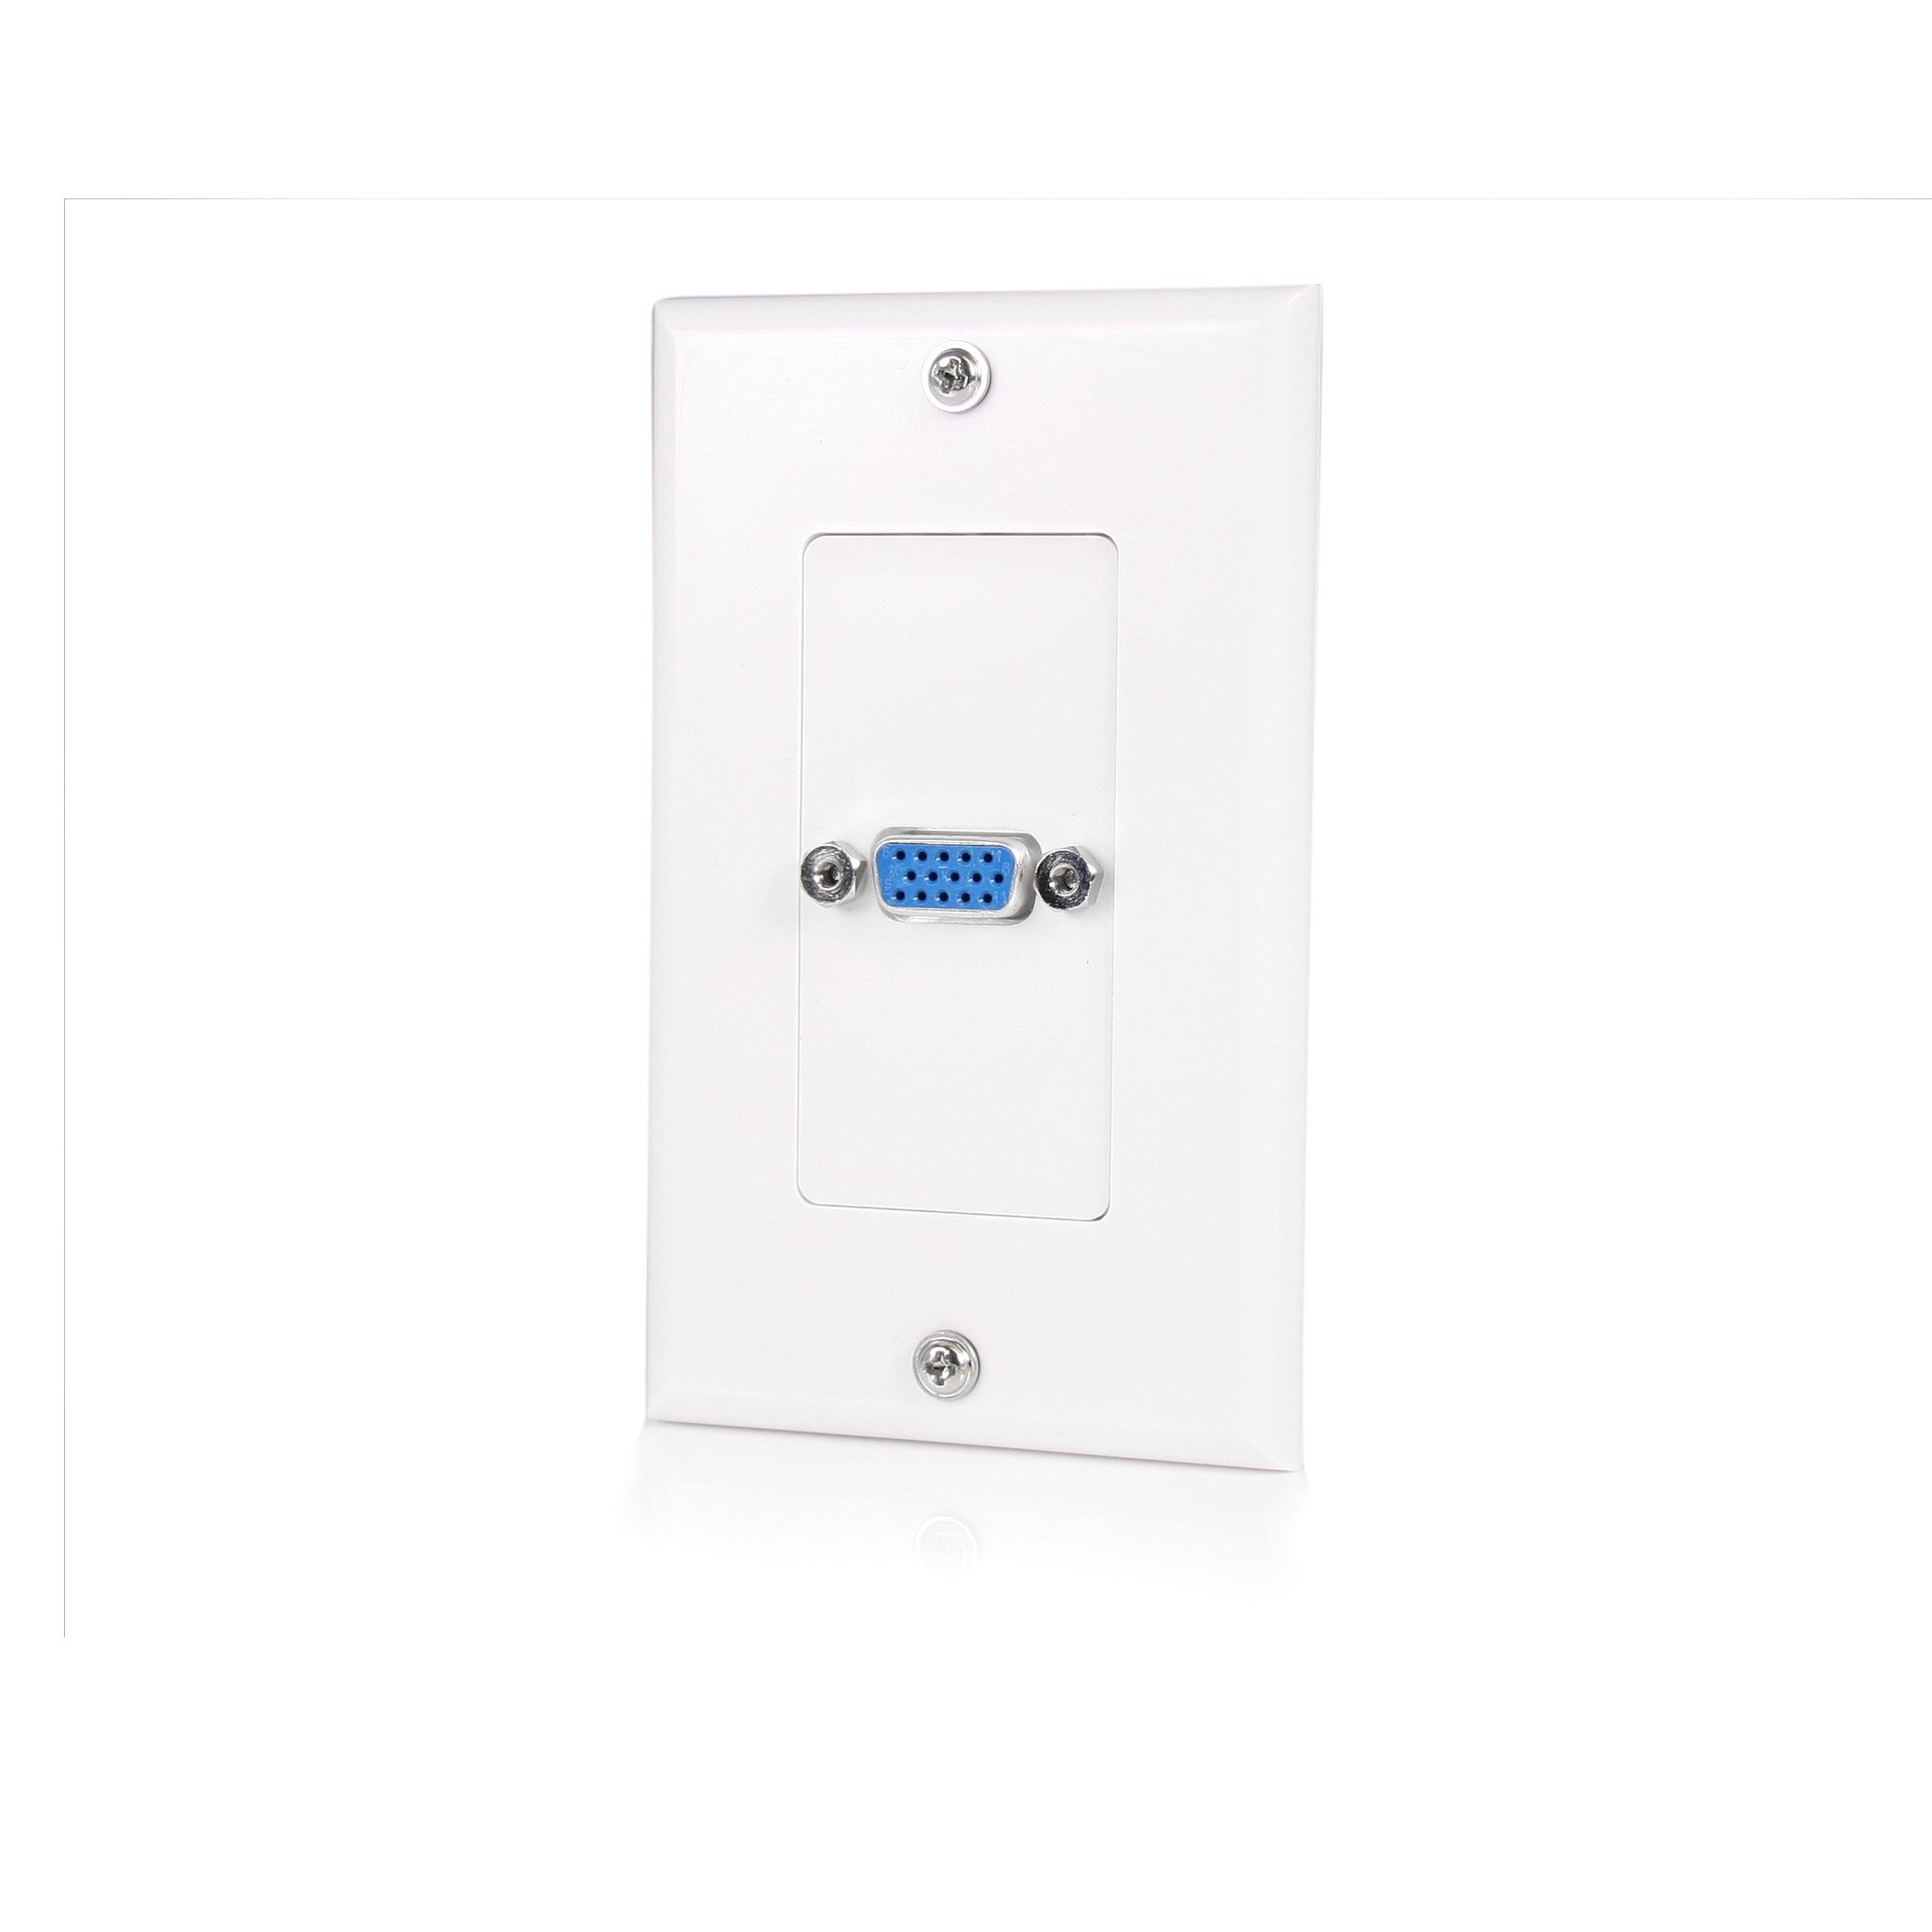 Amazon Com Startech Com Vgaplate Single Outlet 15 Pin